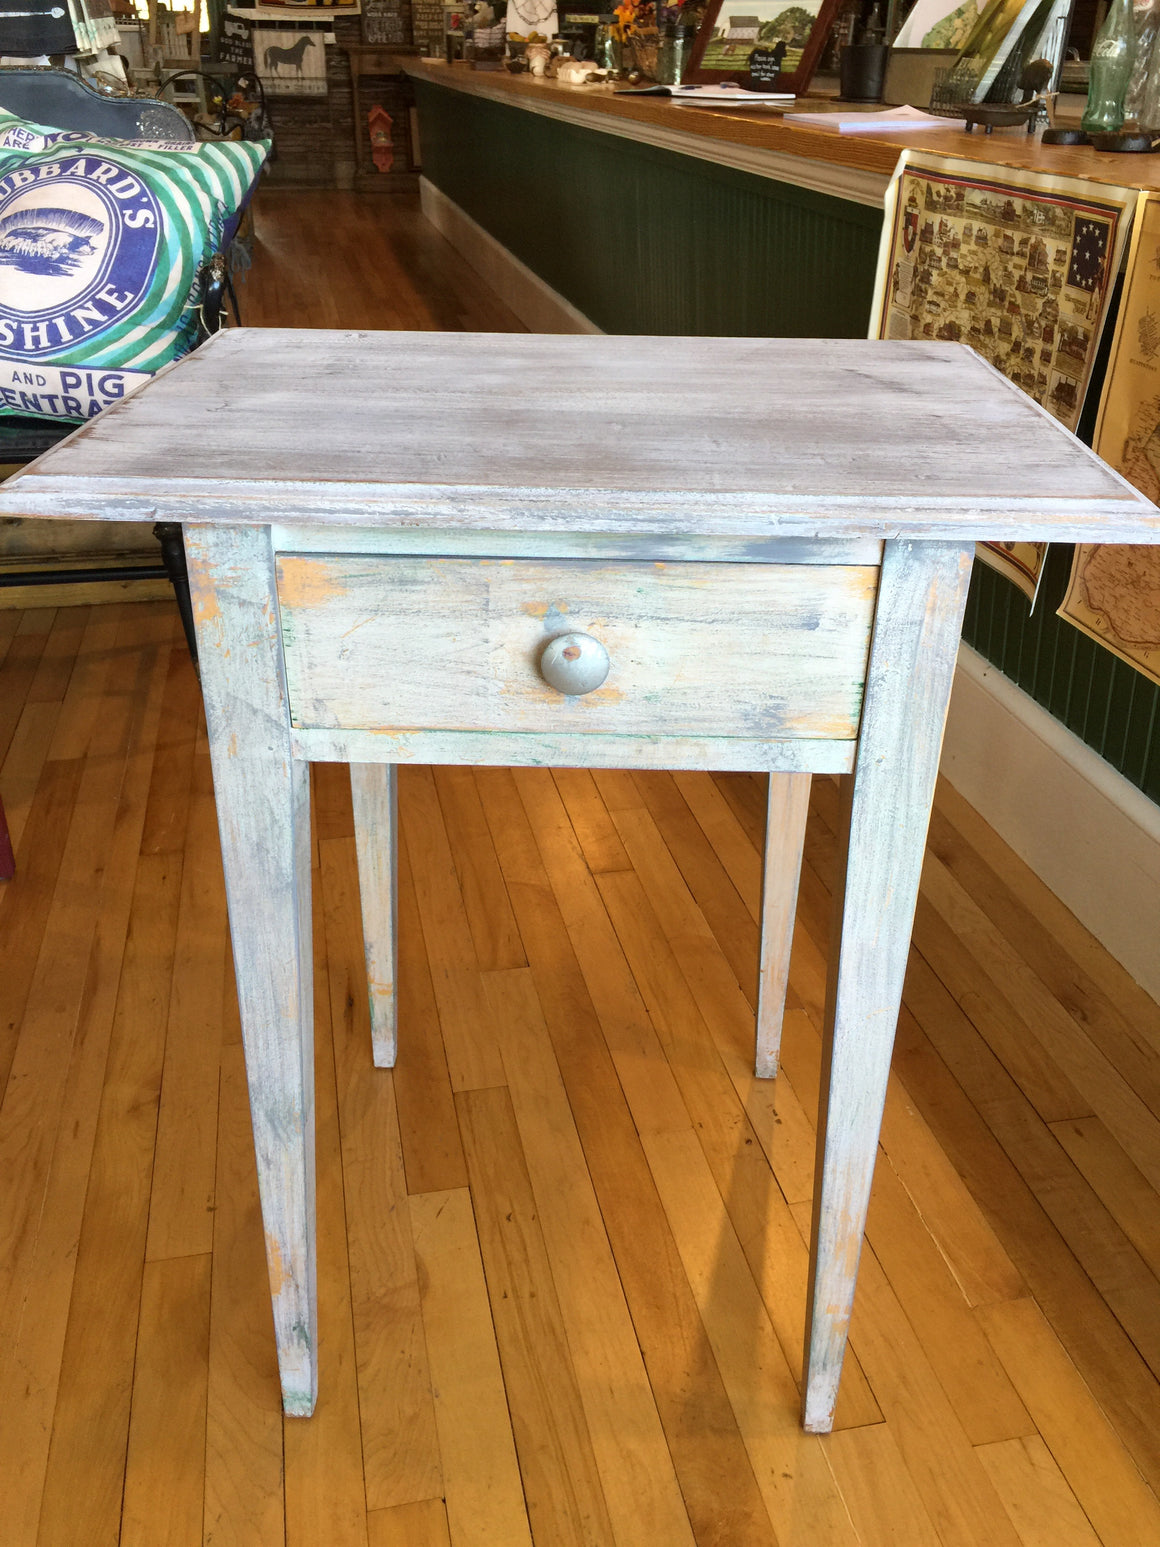 Refurbished Small Rustic Table w/ Drawer